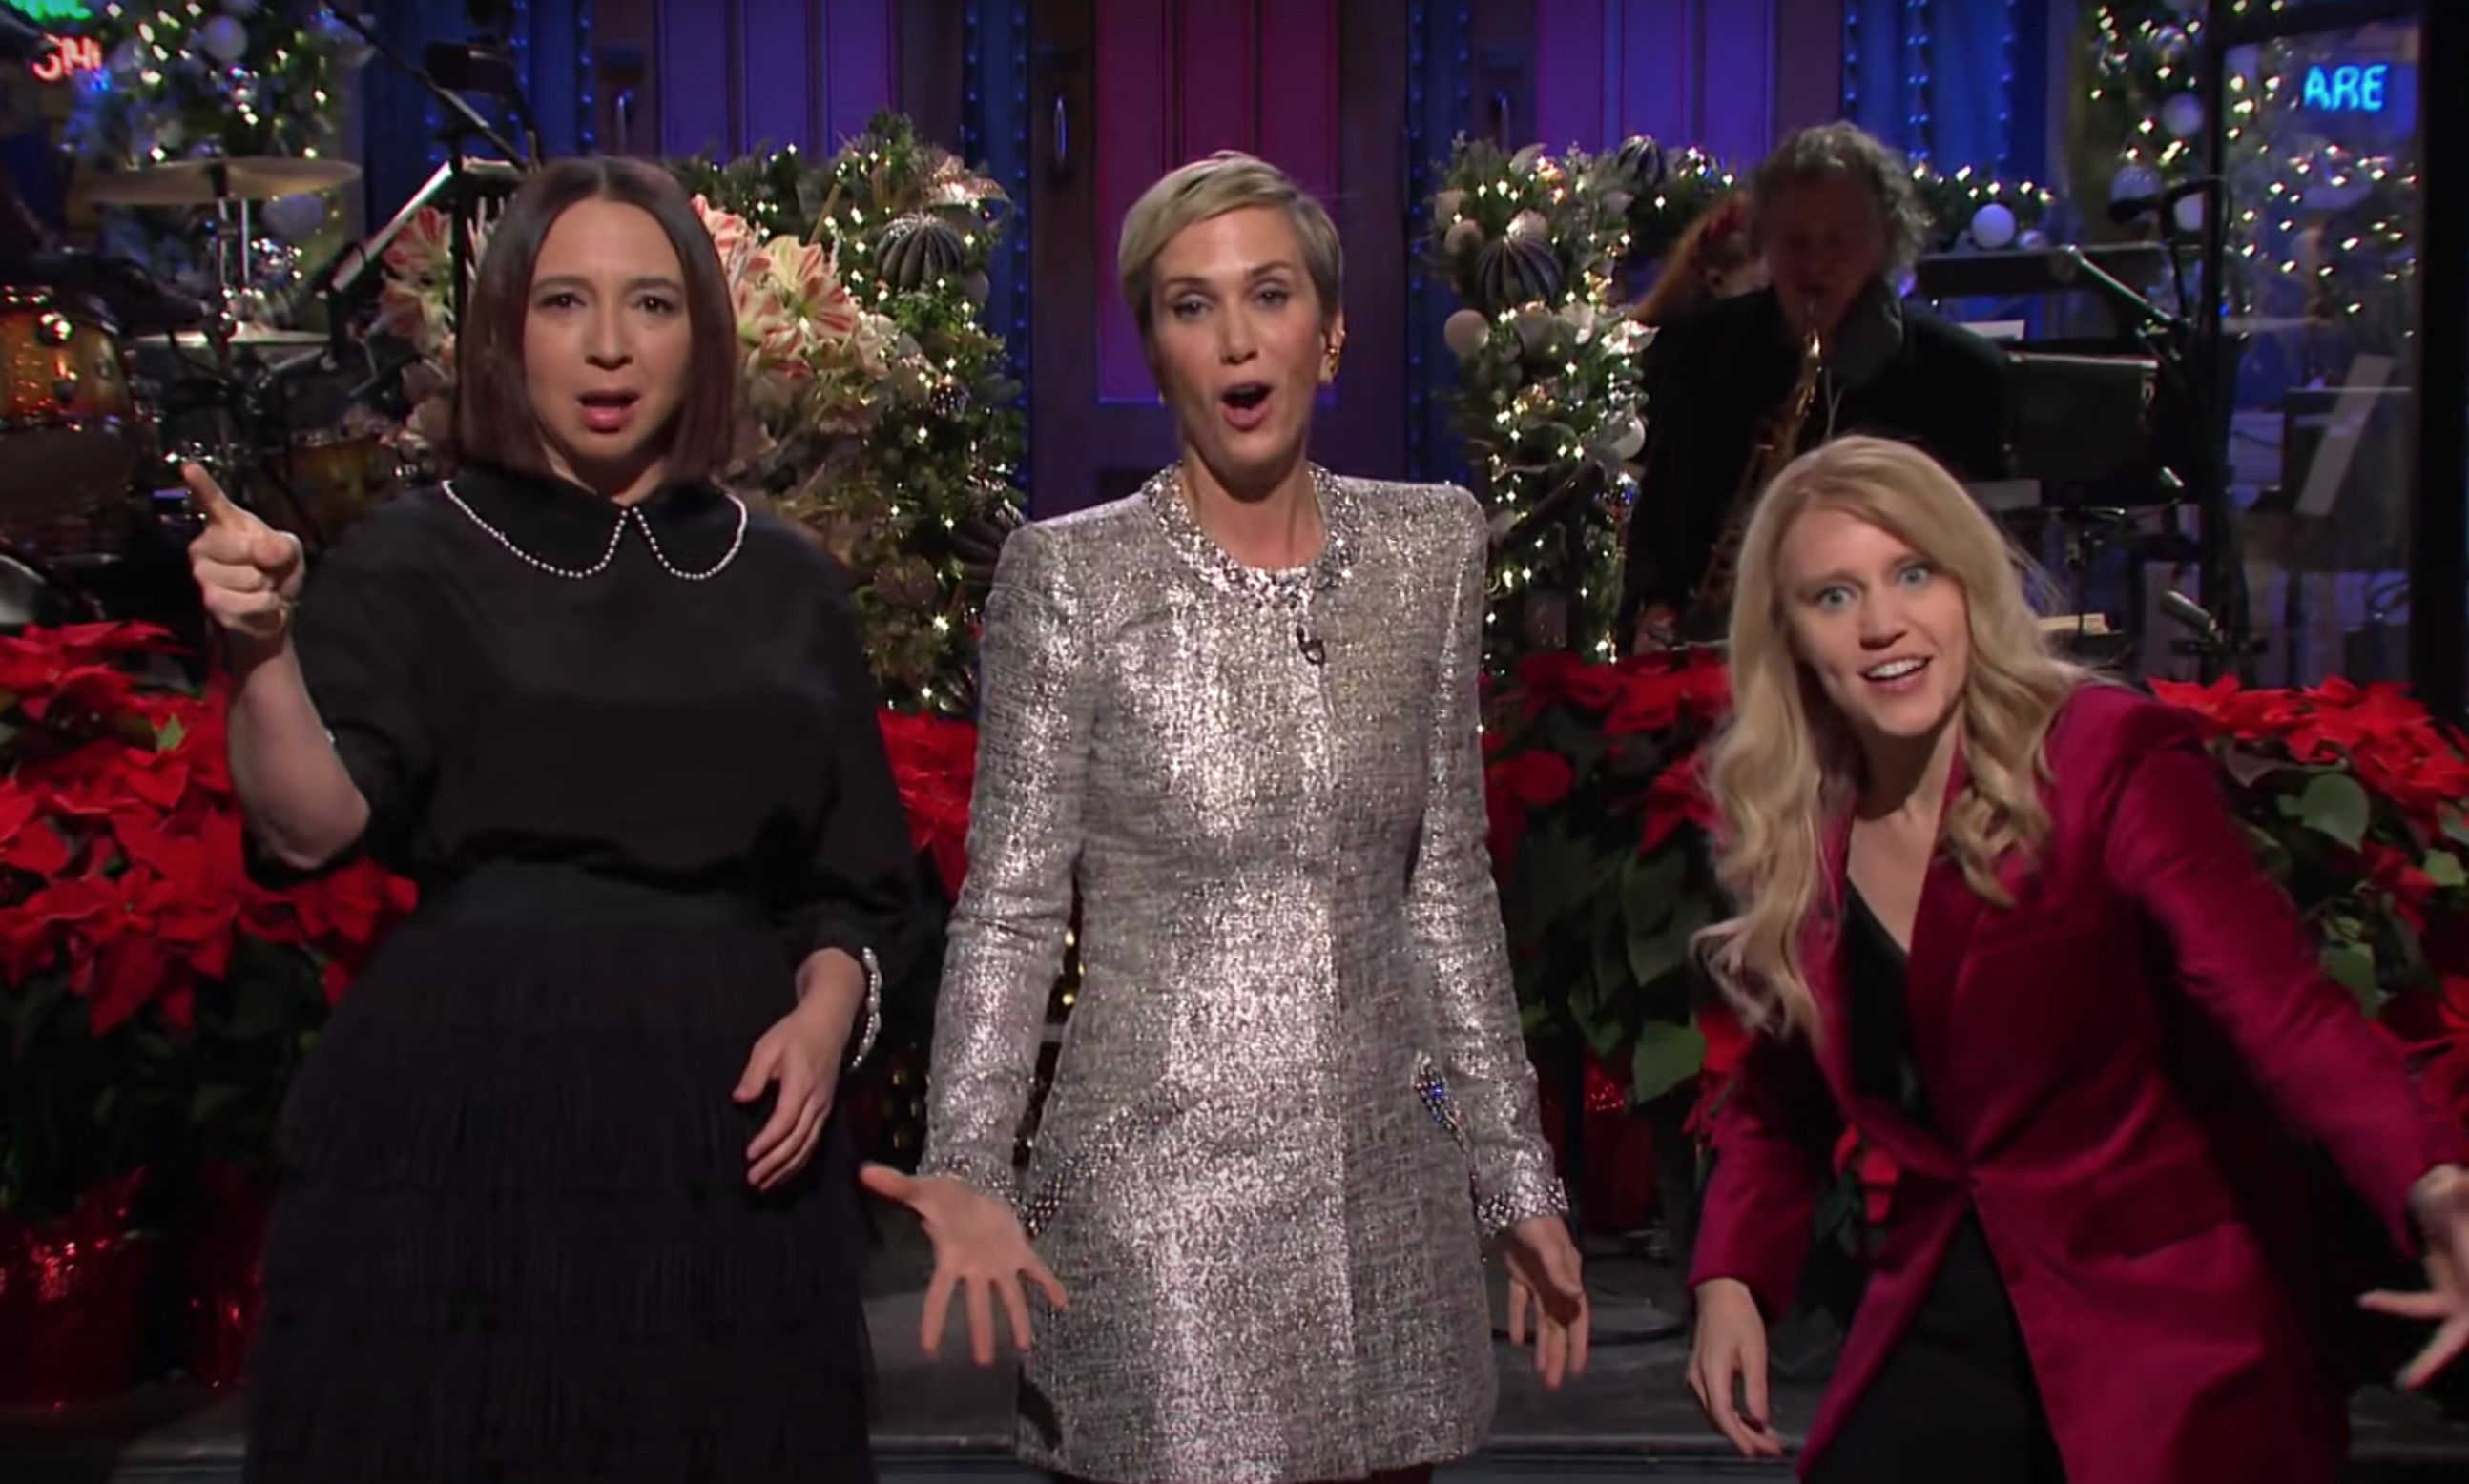 Snl Recap Host Kristen Wiig Closes Out 2020 With A Very Jolly Christmas Episode Gothamist